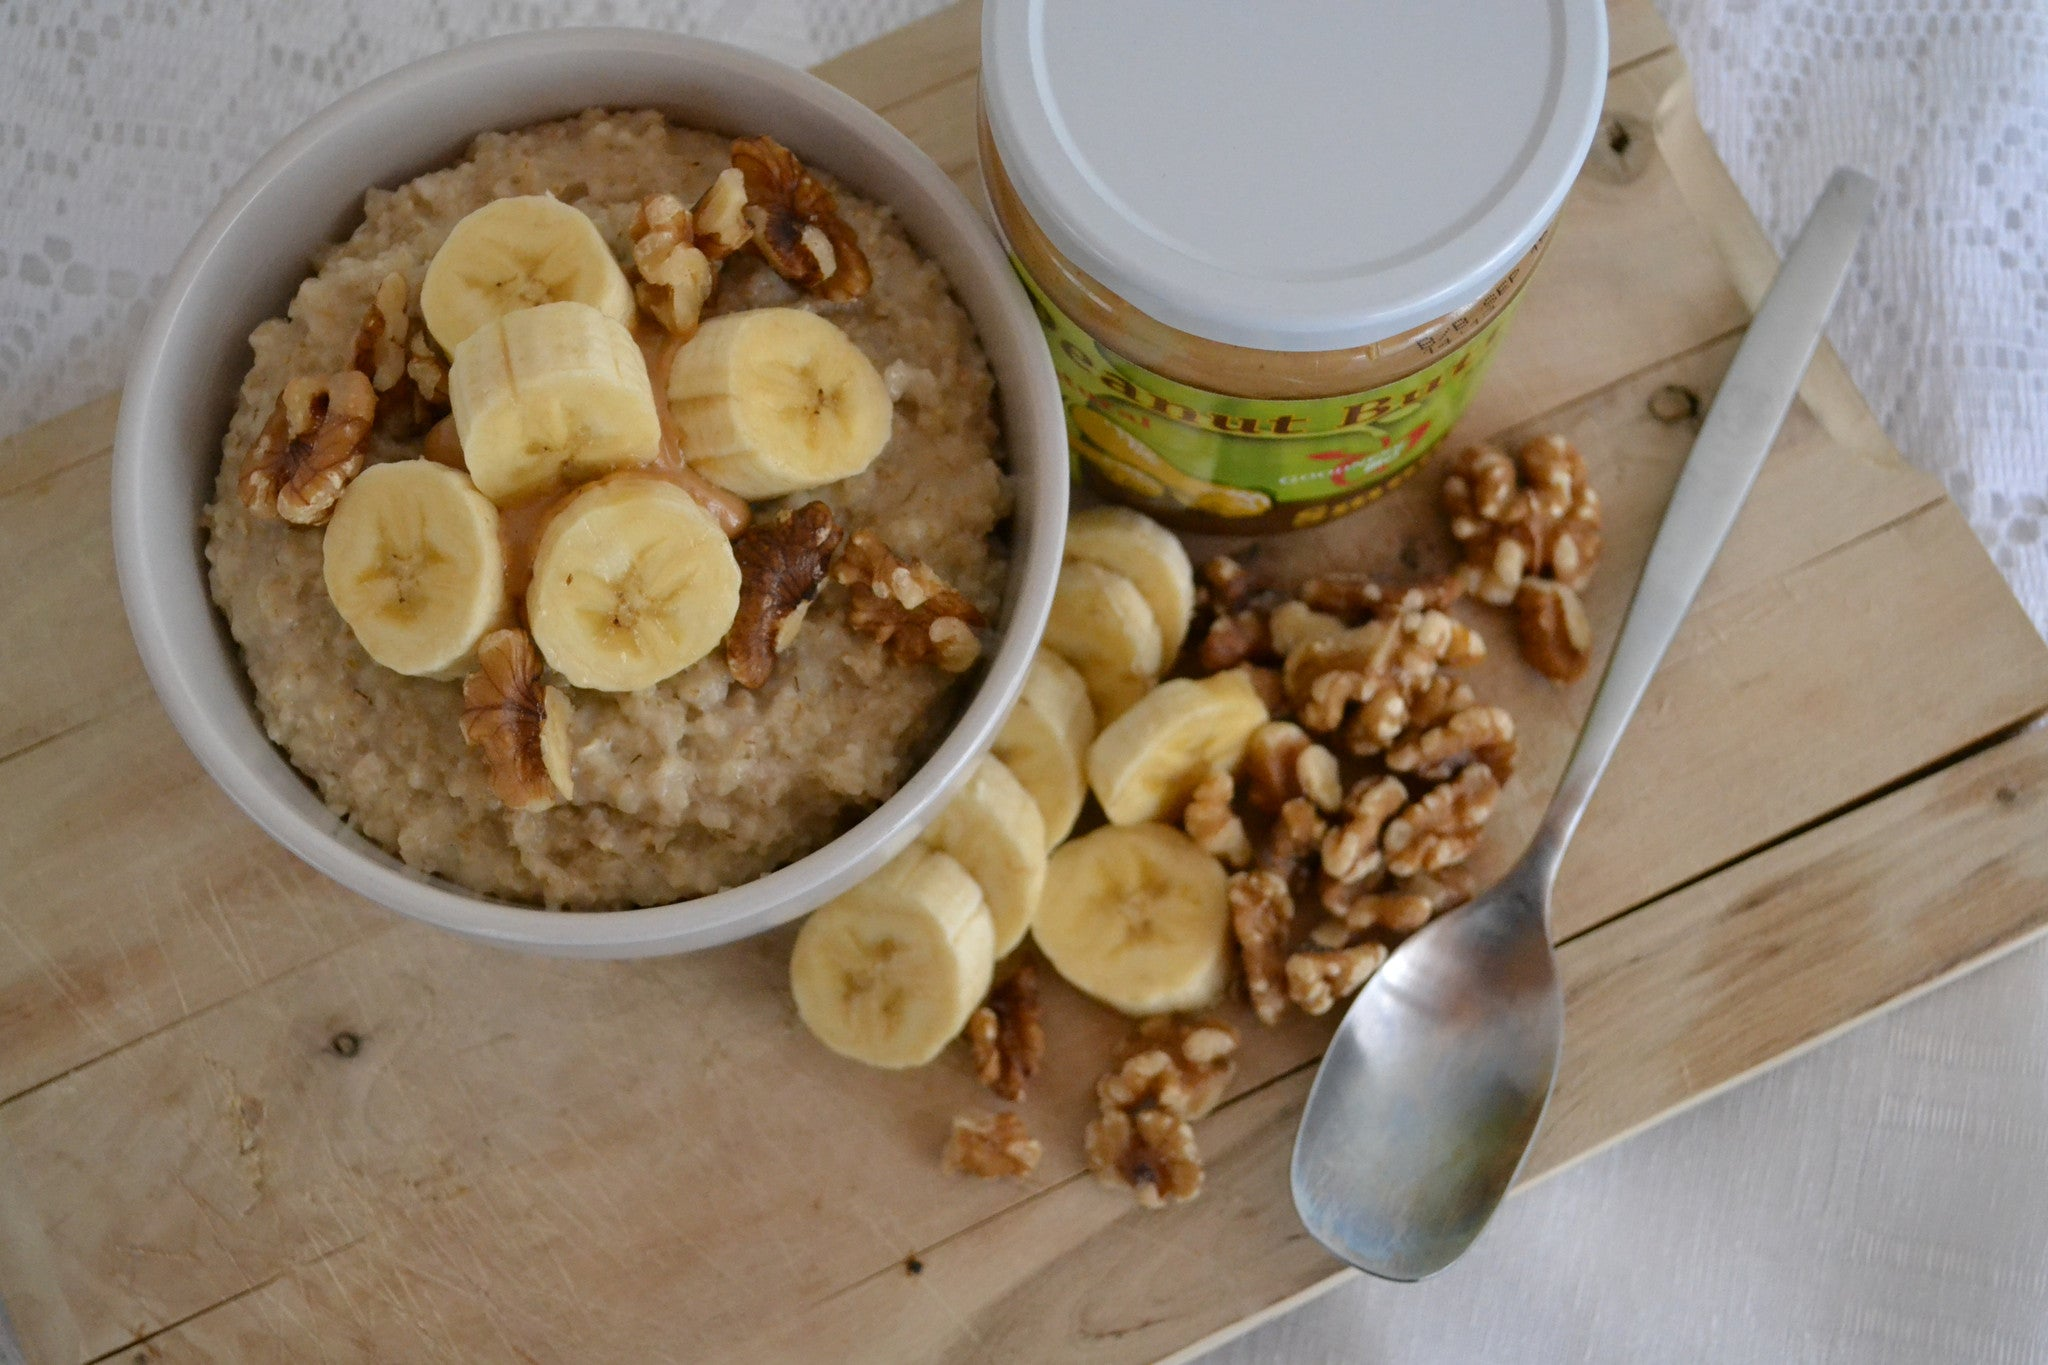 Peanut Butter Banana Oatmeal with Walnuts